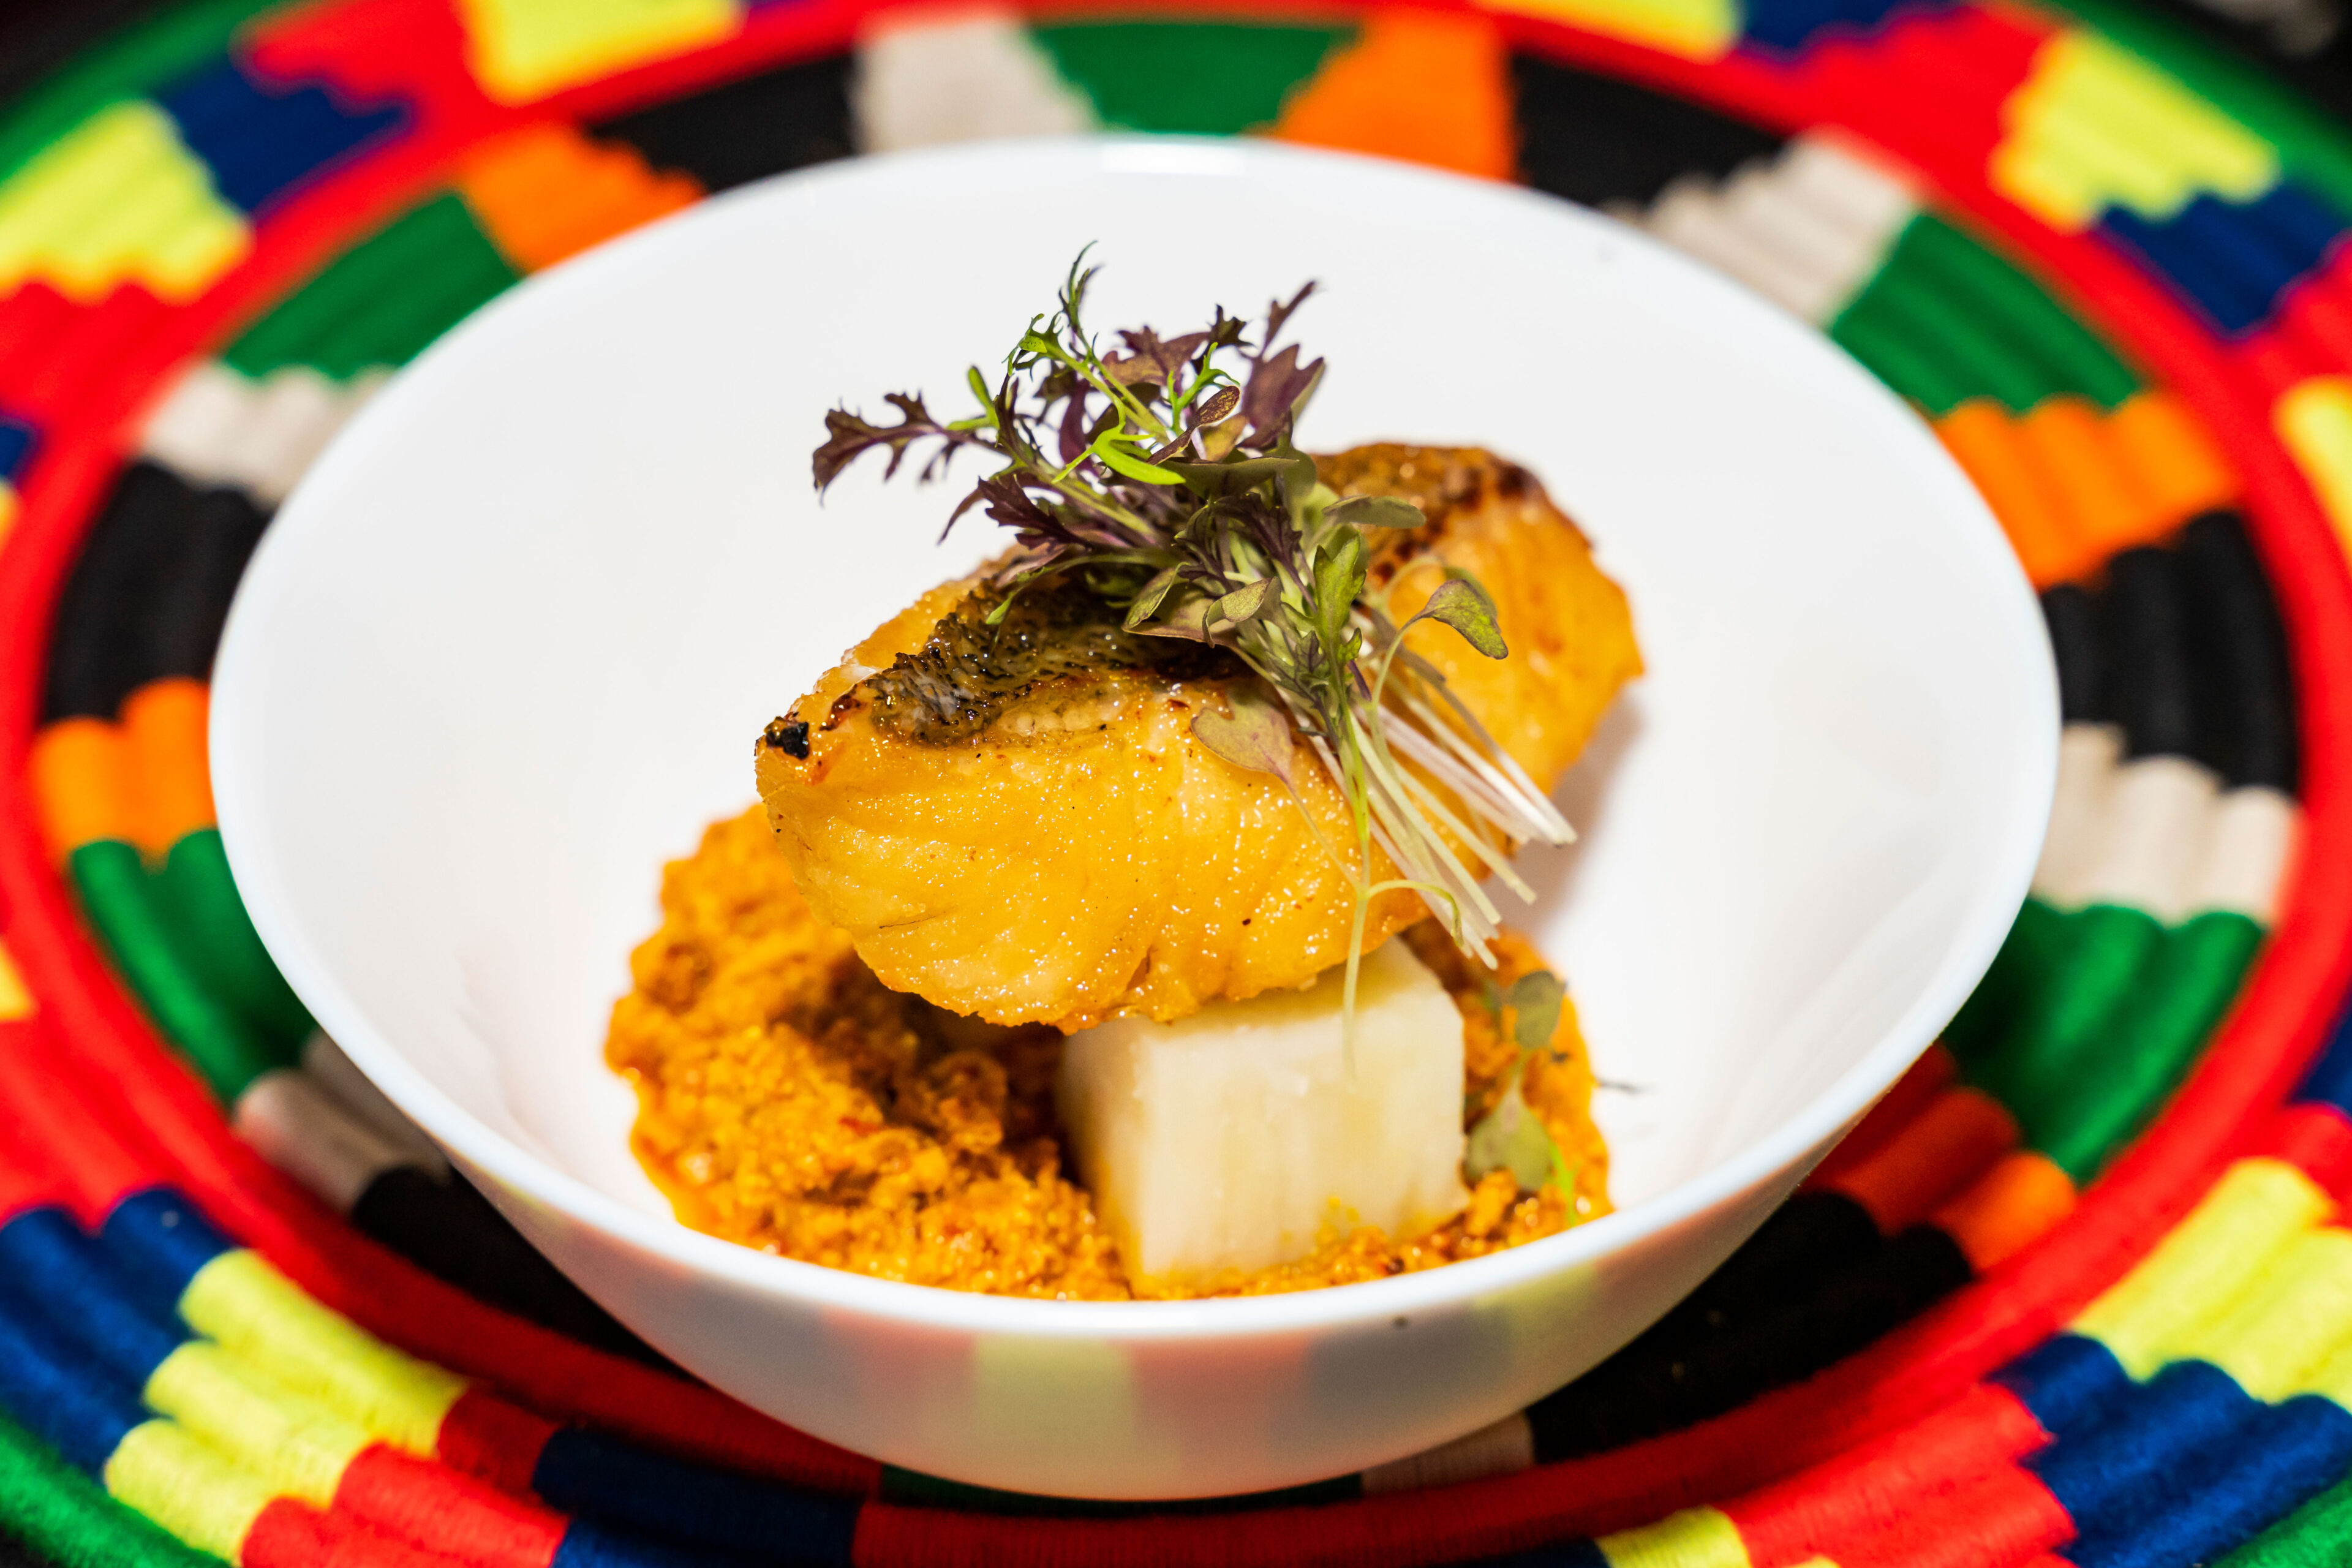 tasty african cuisine in a white bowl on a colourful placemat